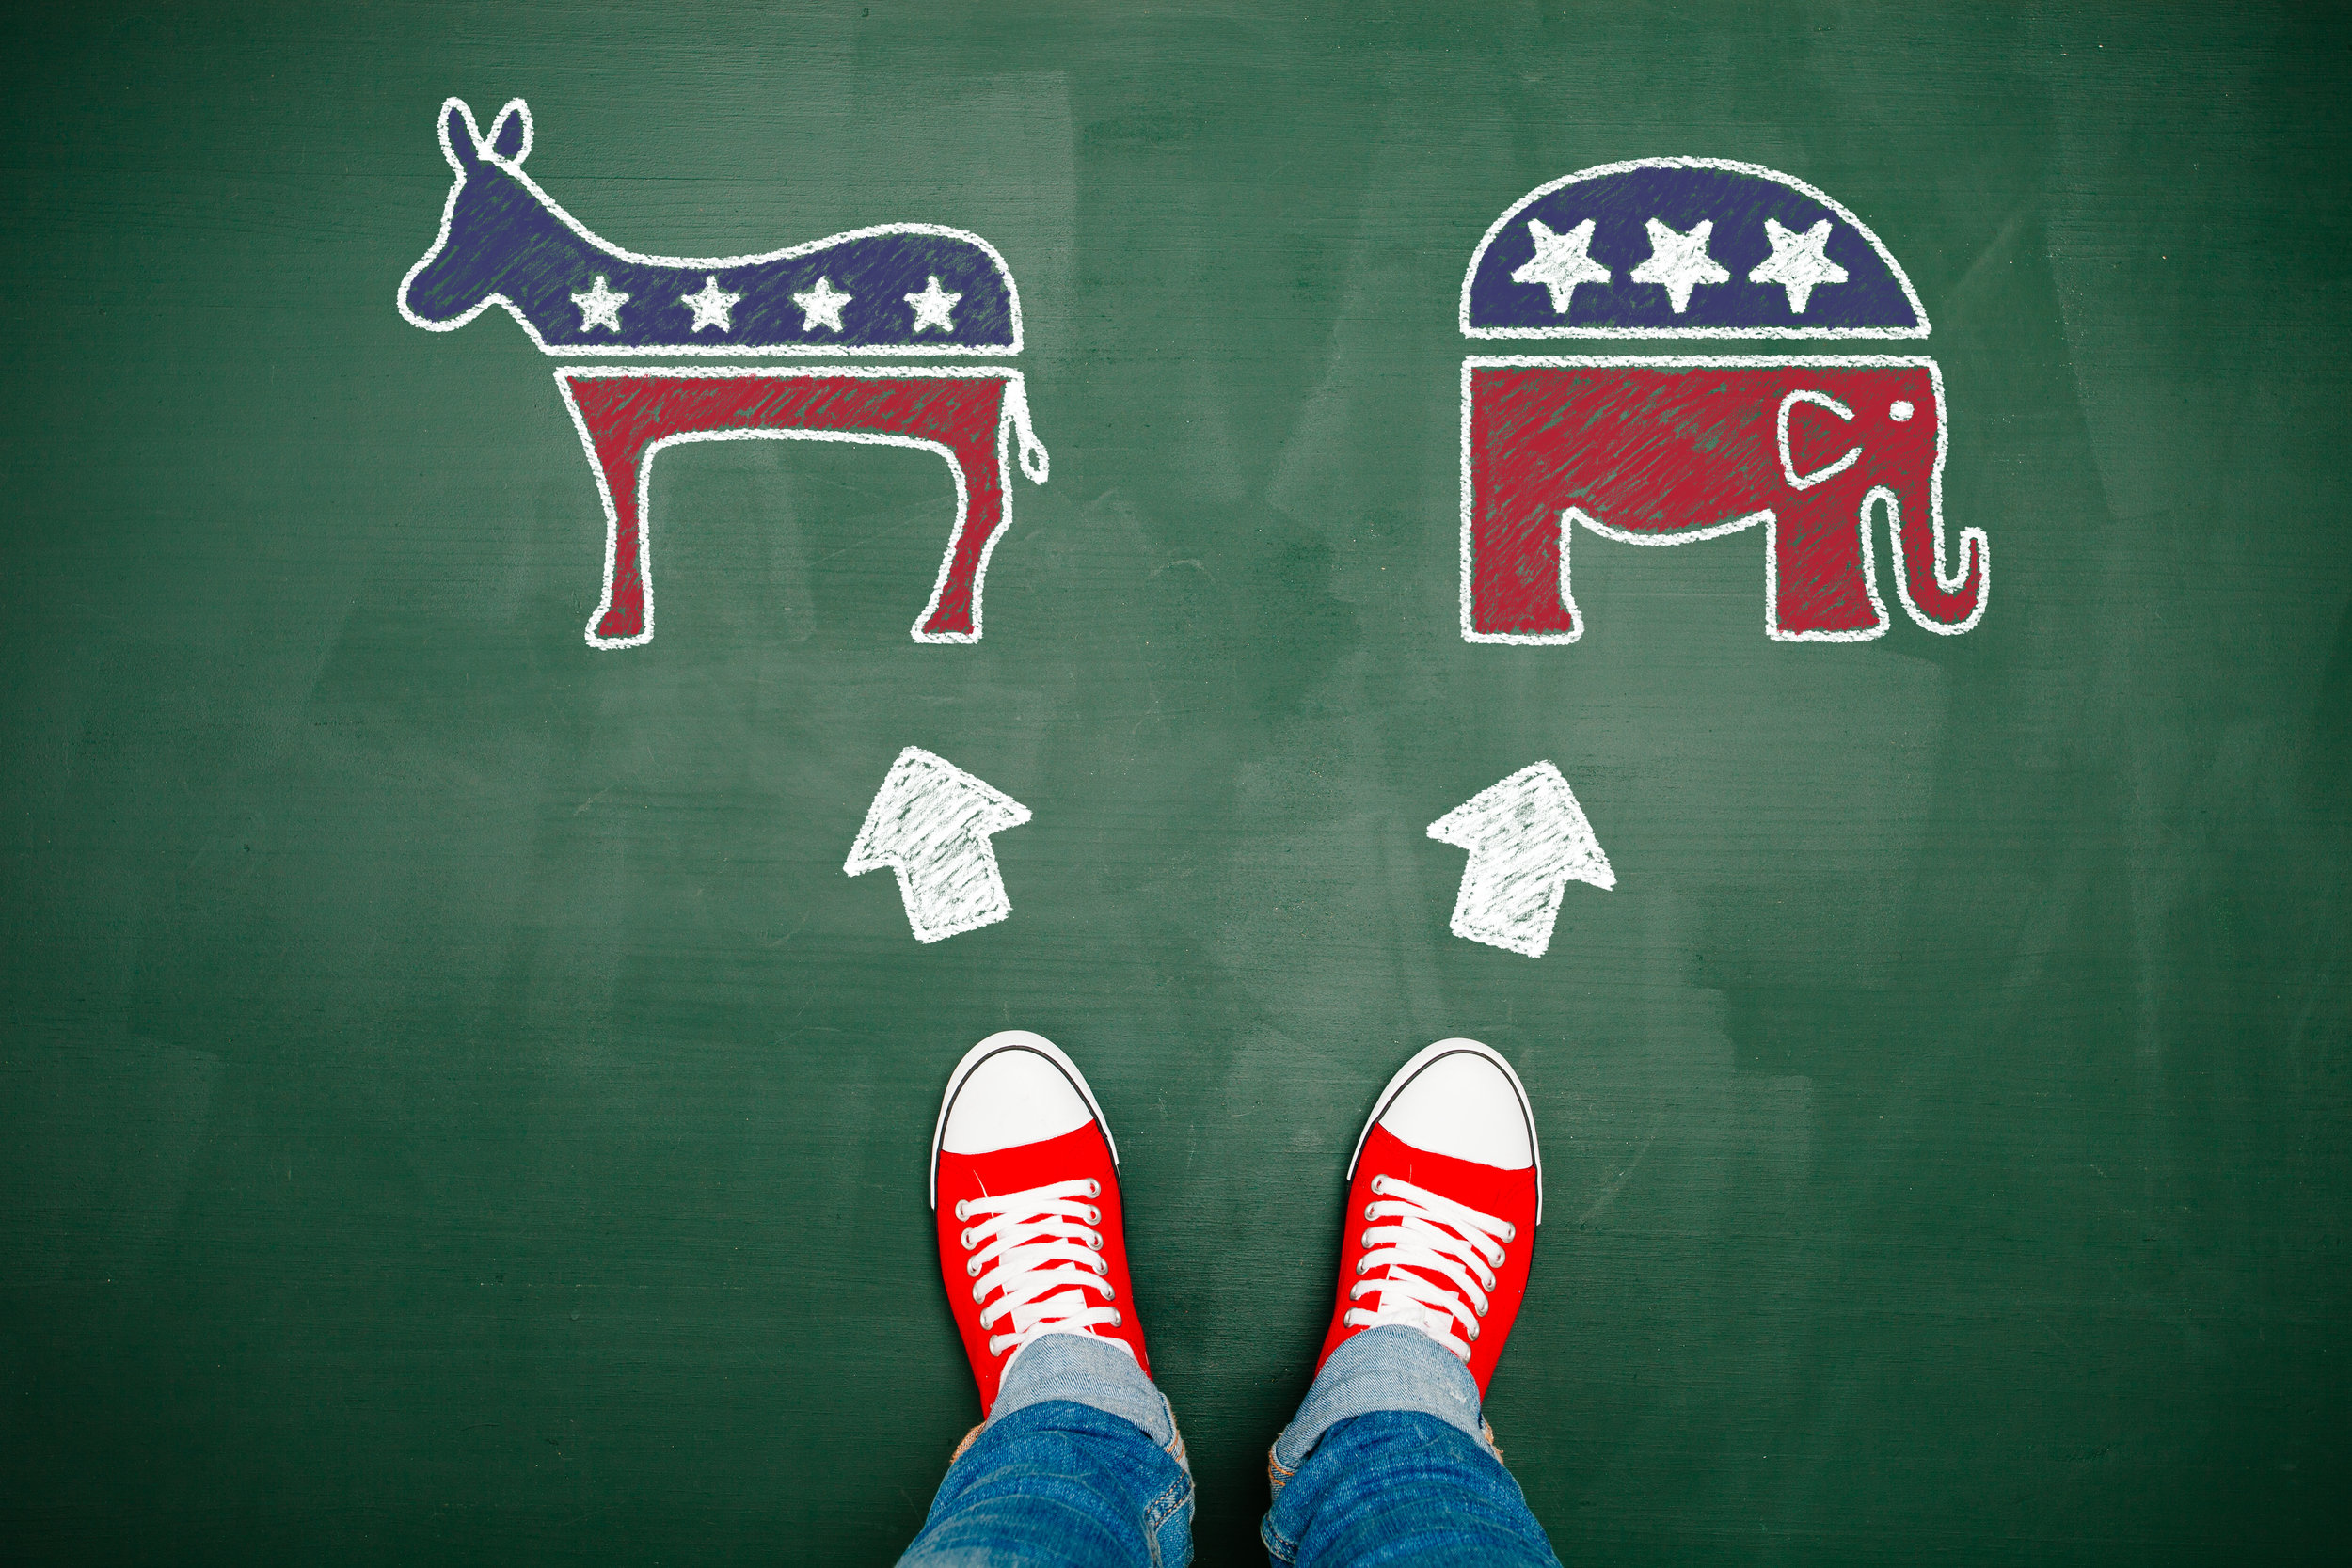 Are you a registered Democrat or Republican in Los Angeles?